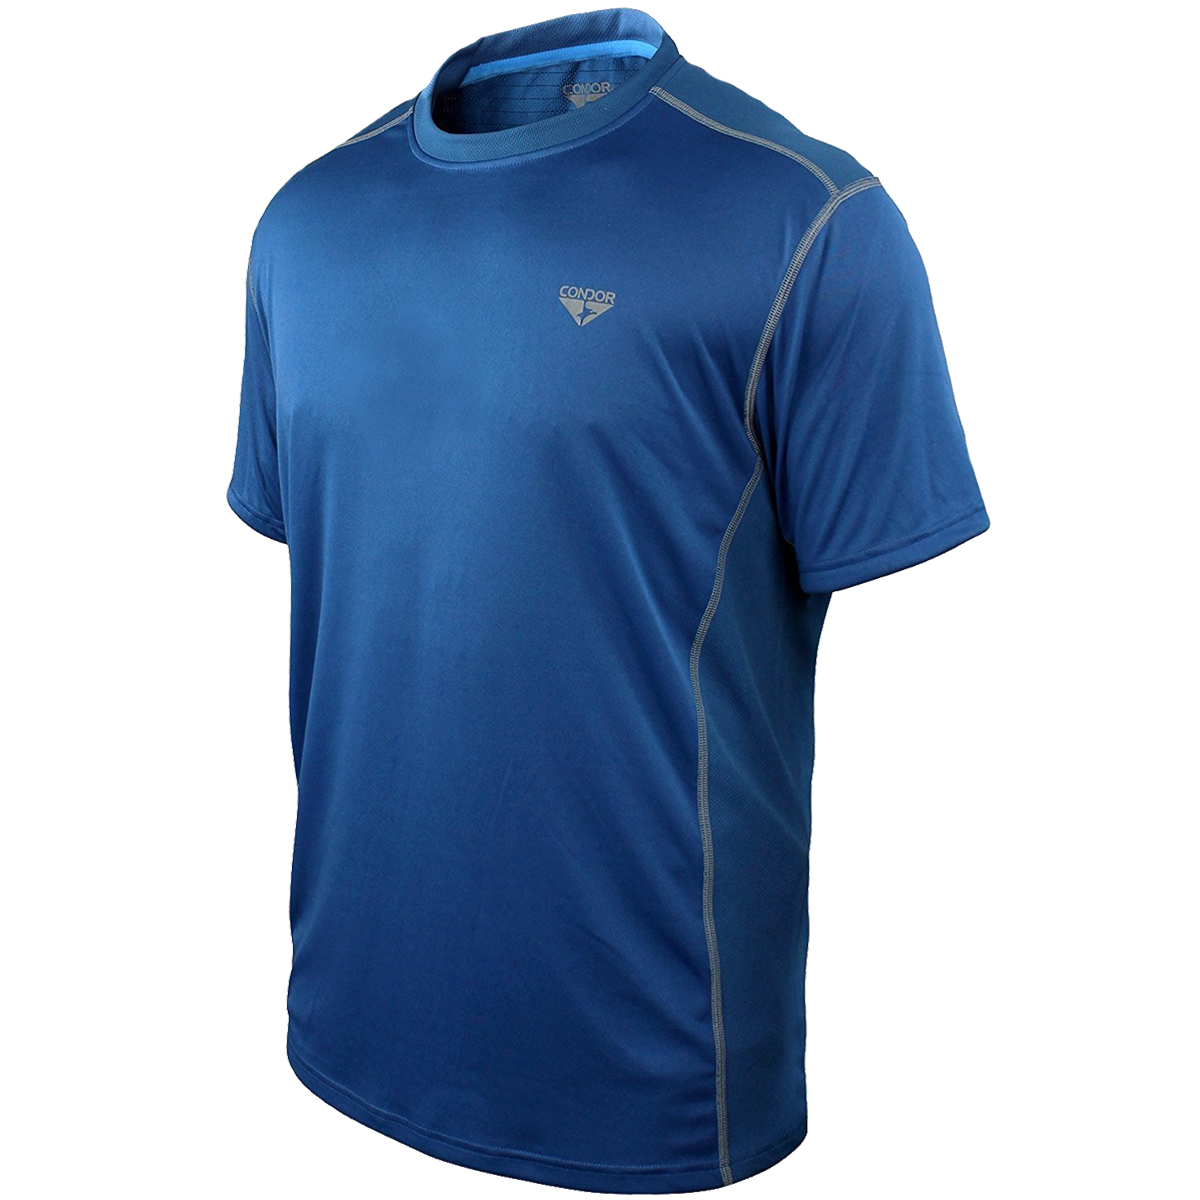 Condor surge performance t shirt cobalt t shirts vests for What is a performance t shirt